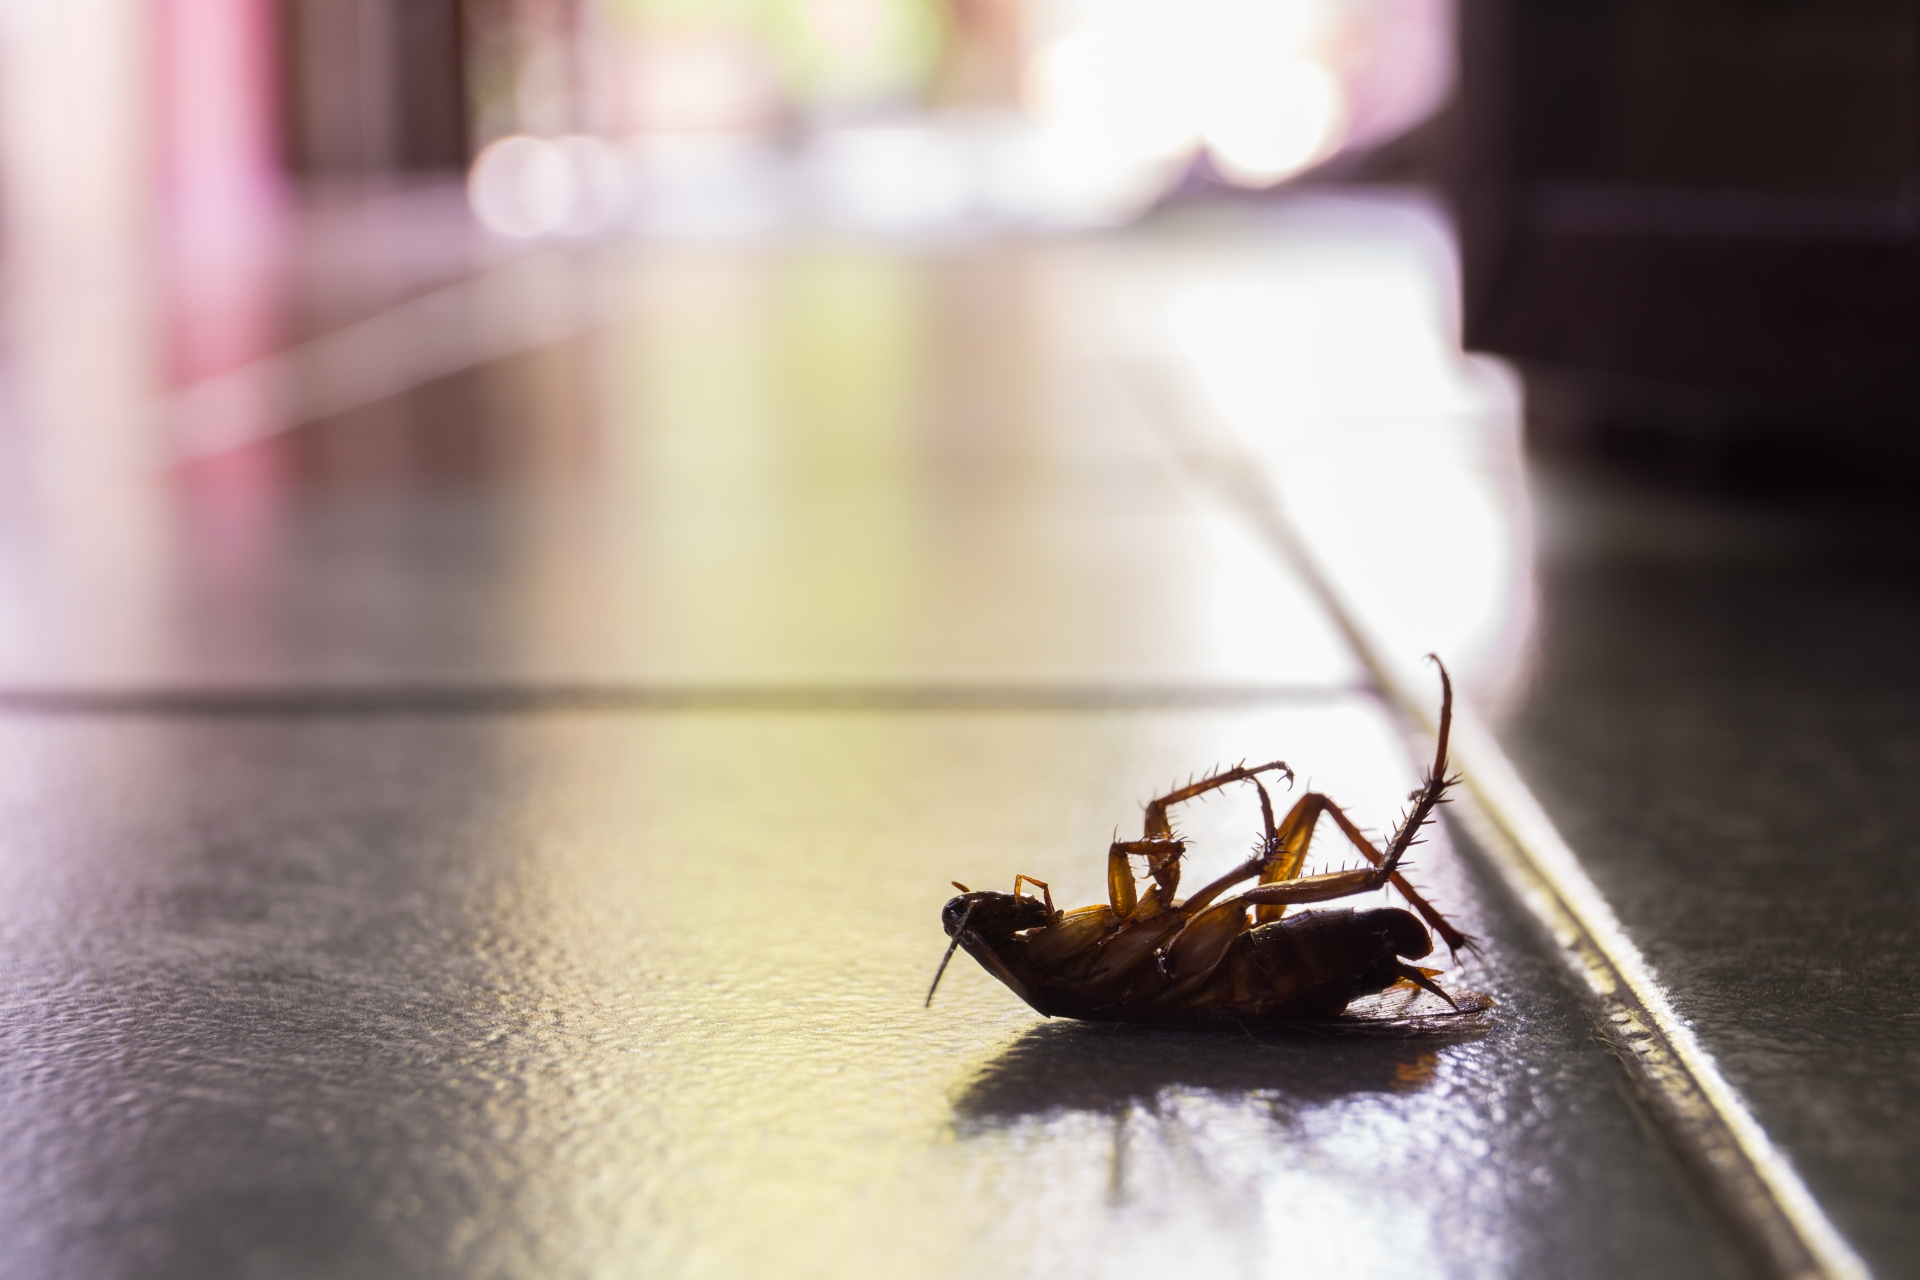 Cockroach Control, Pest Control in Wembley, Alperton, Sudbury, HA0. Call Now 020 8166 9746